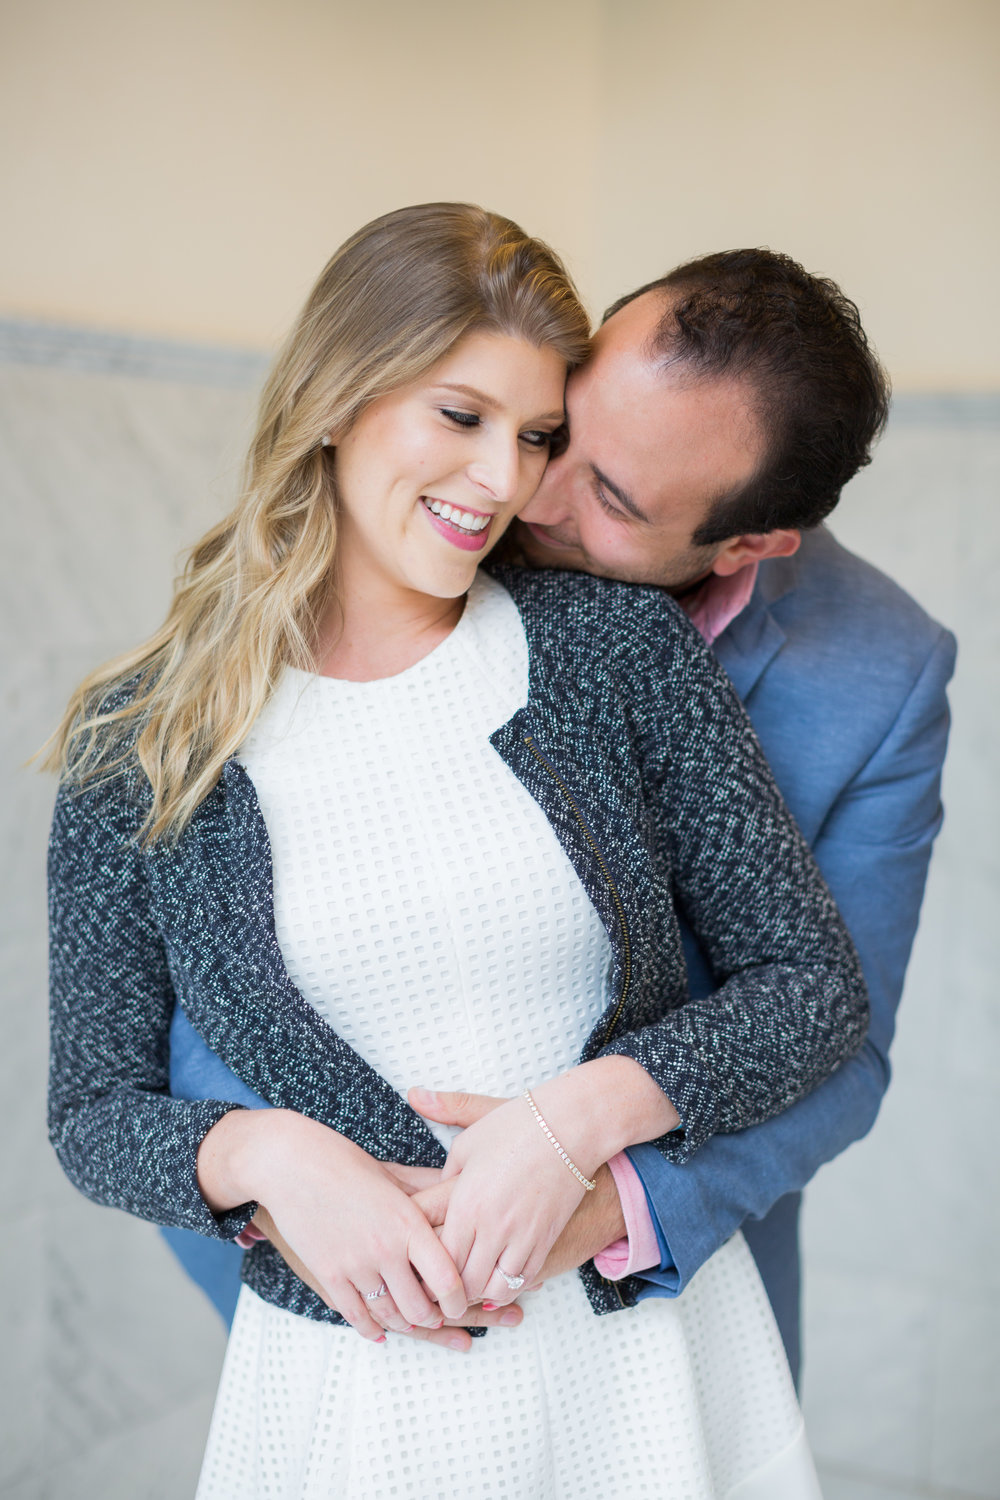 Melissa Kruse Photography - Courtney & JP Gramercy NYC Engagement Photos-93.jpg